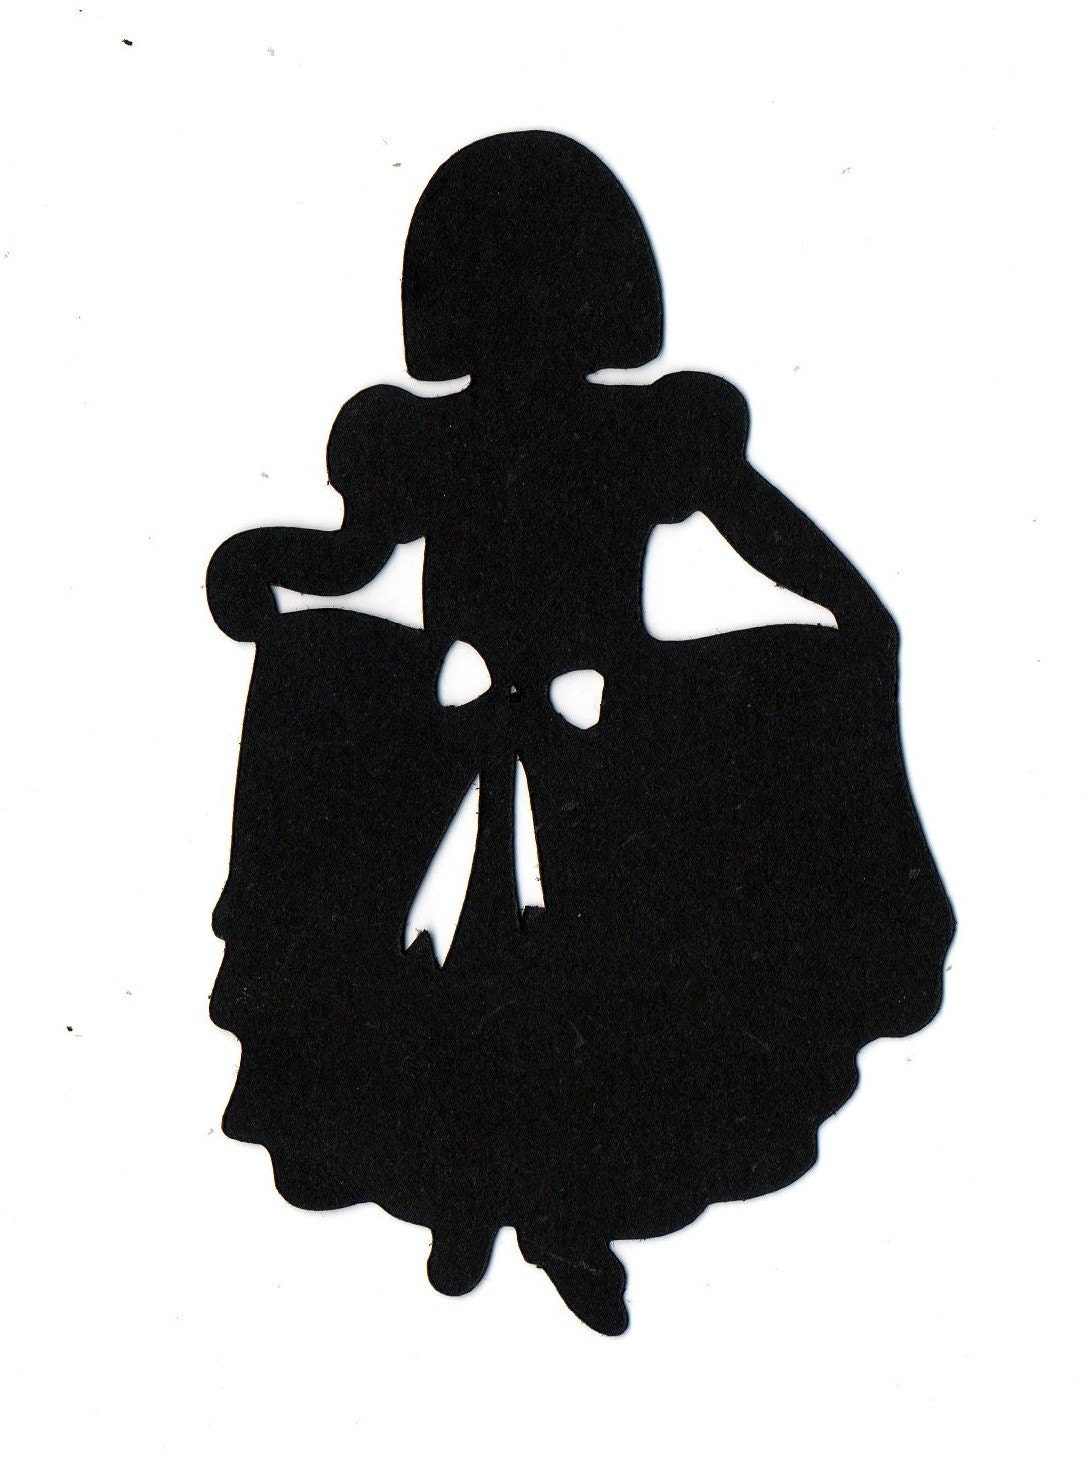 Gallery For > Flower Girl Ring Bearer Silhouette Clipart